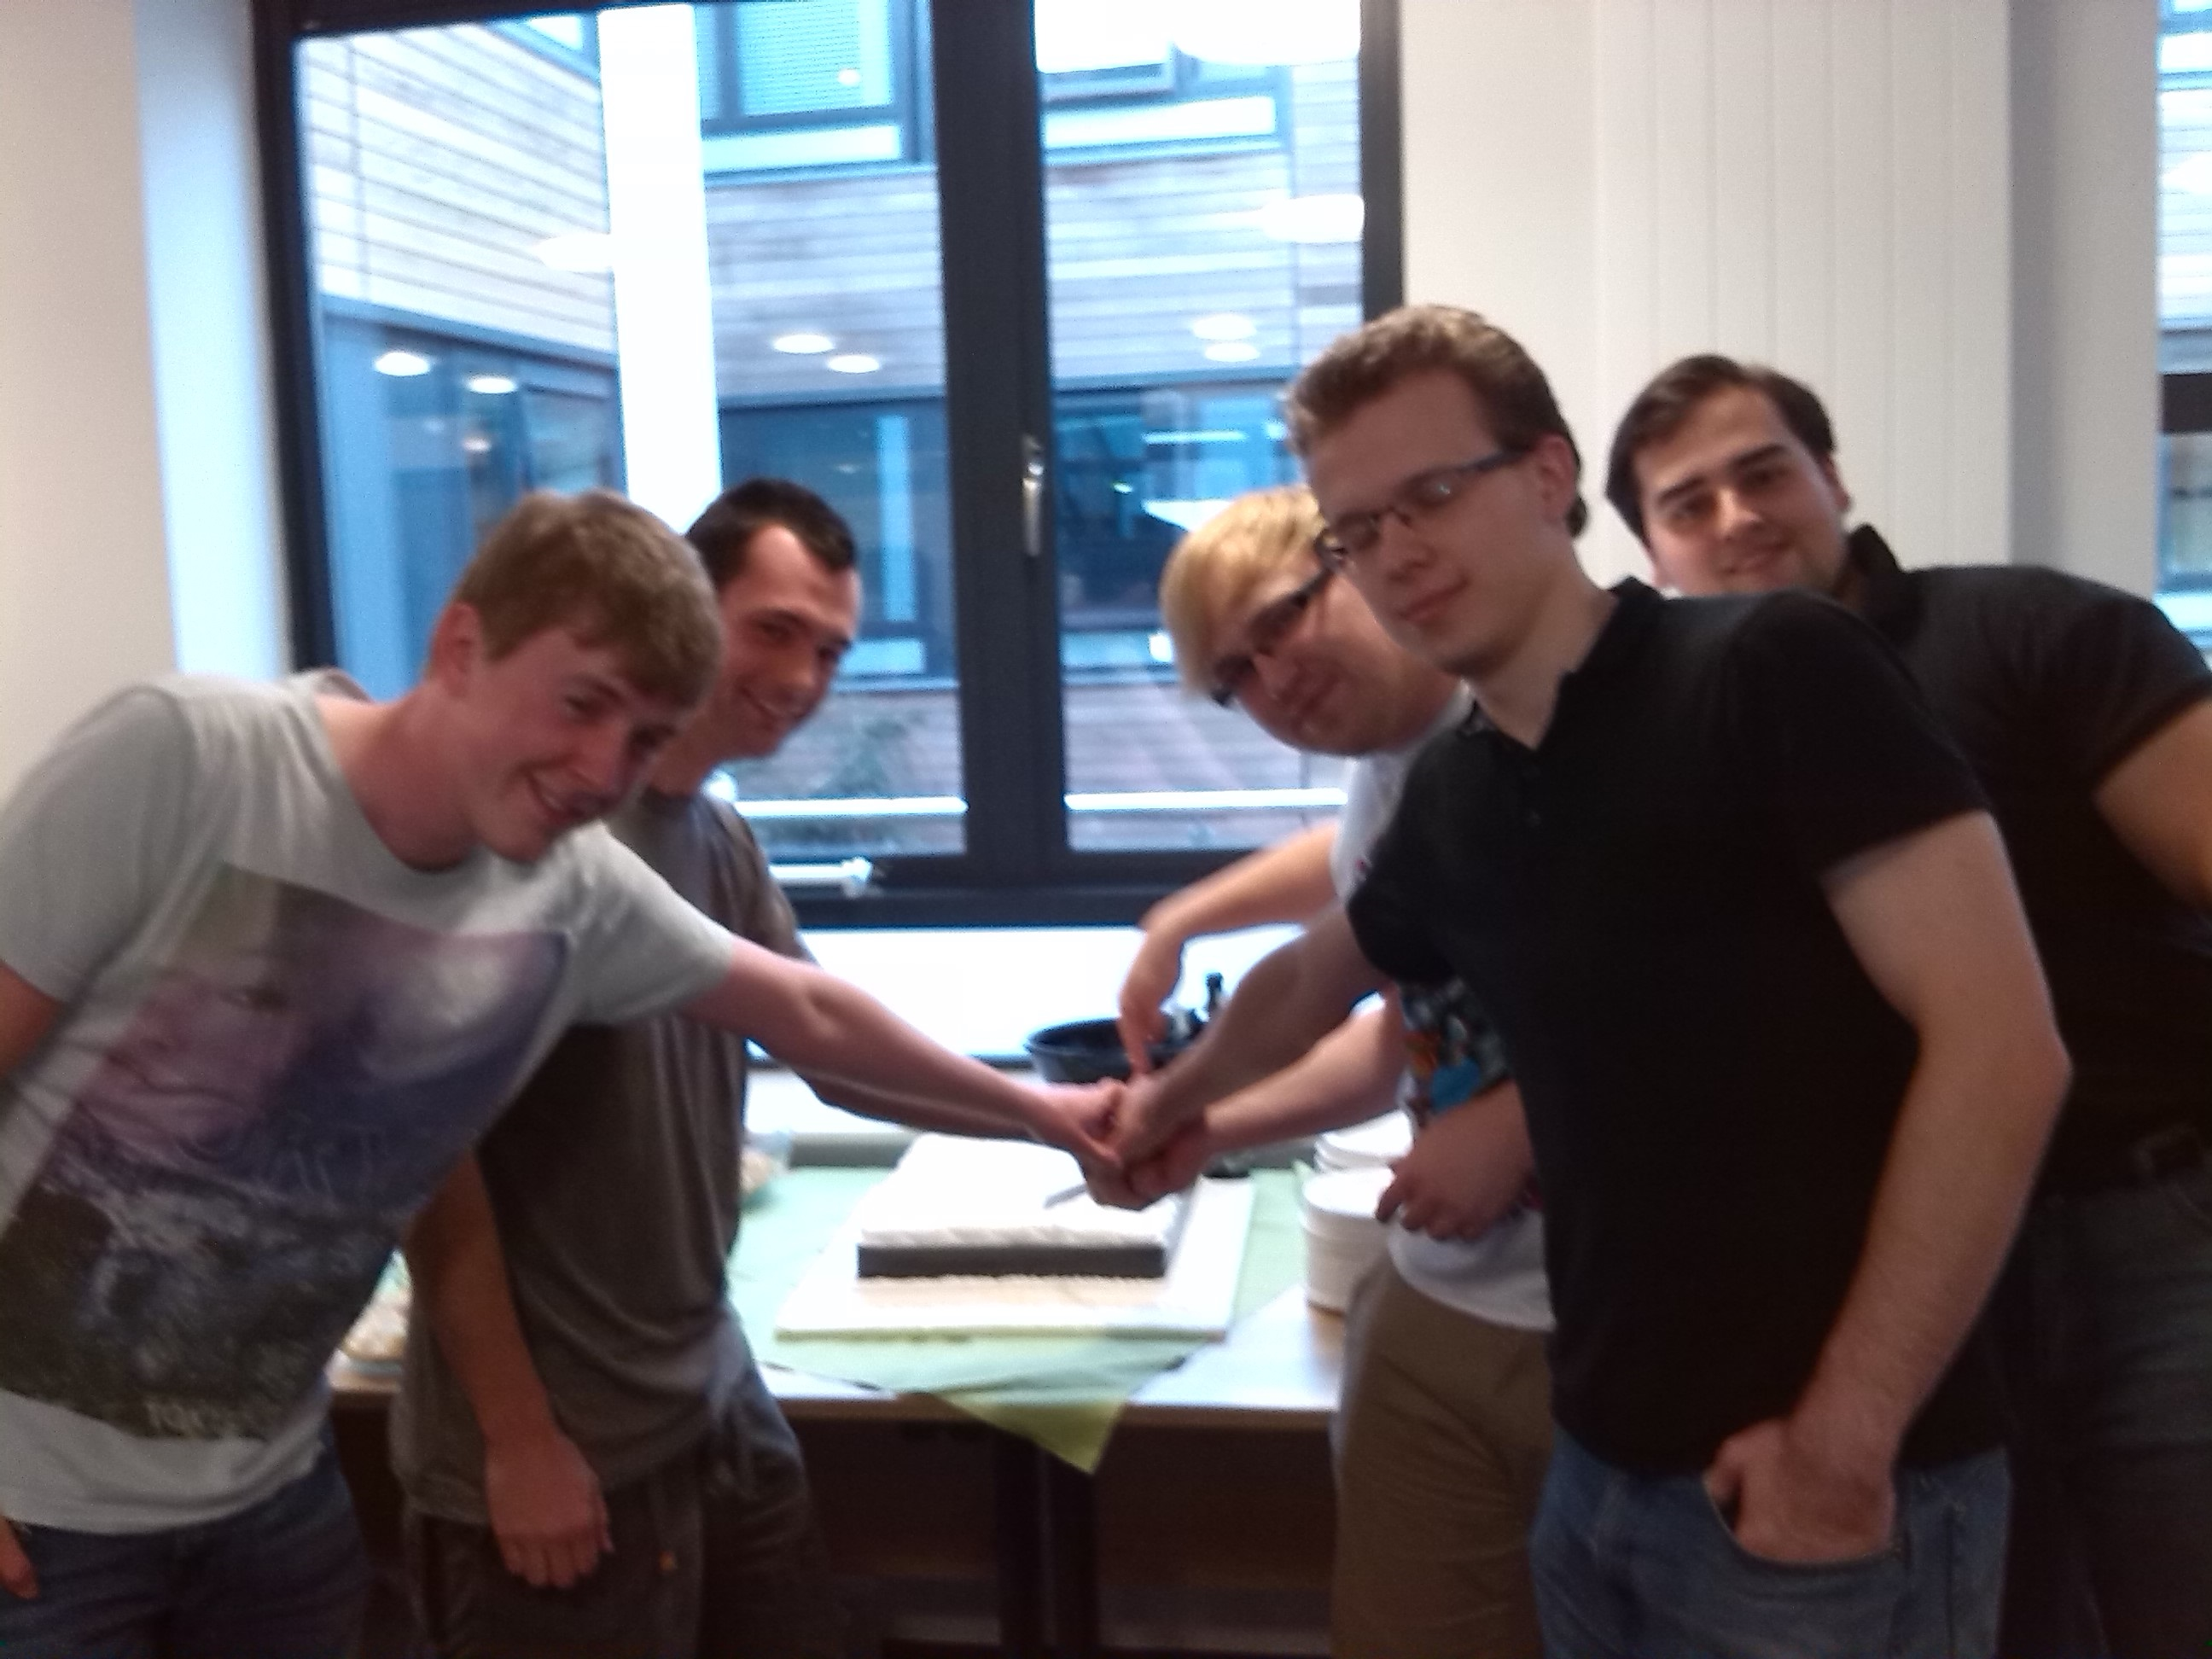 msc exam board celebration centre for complexity science news mwc cutting the cake 2014 jpg